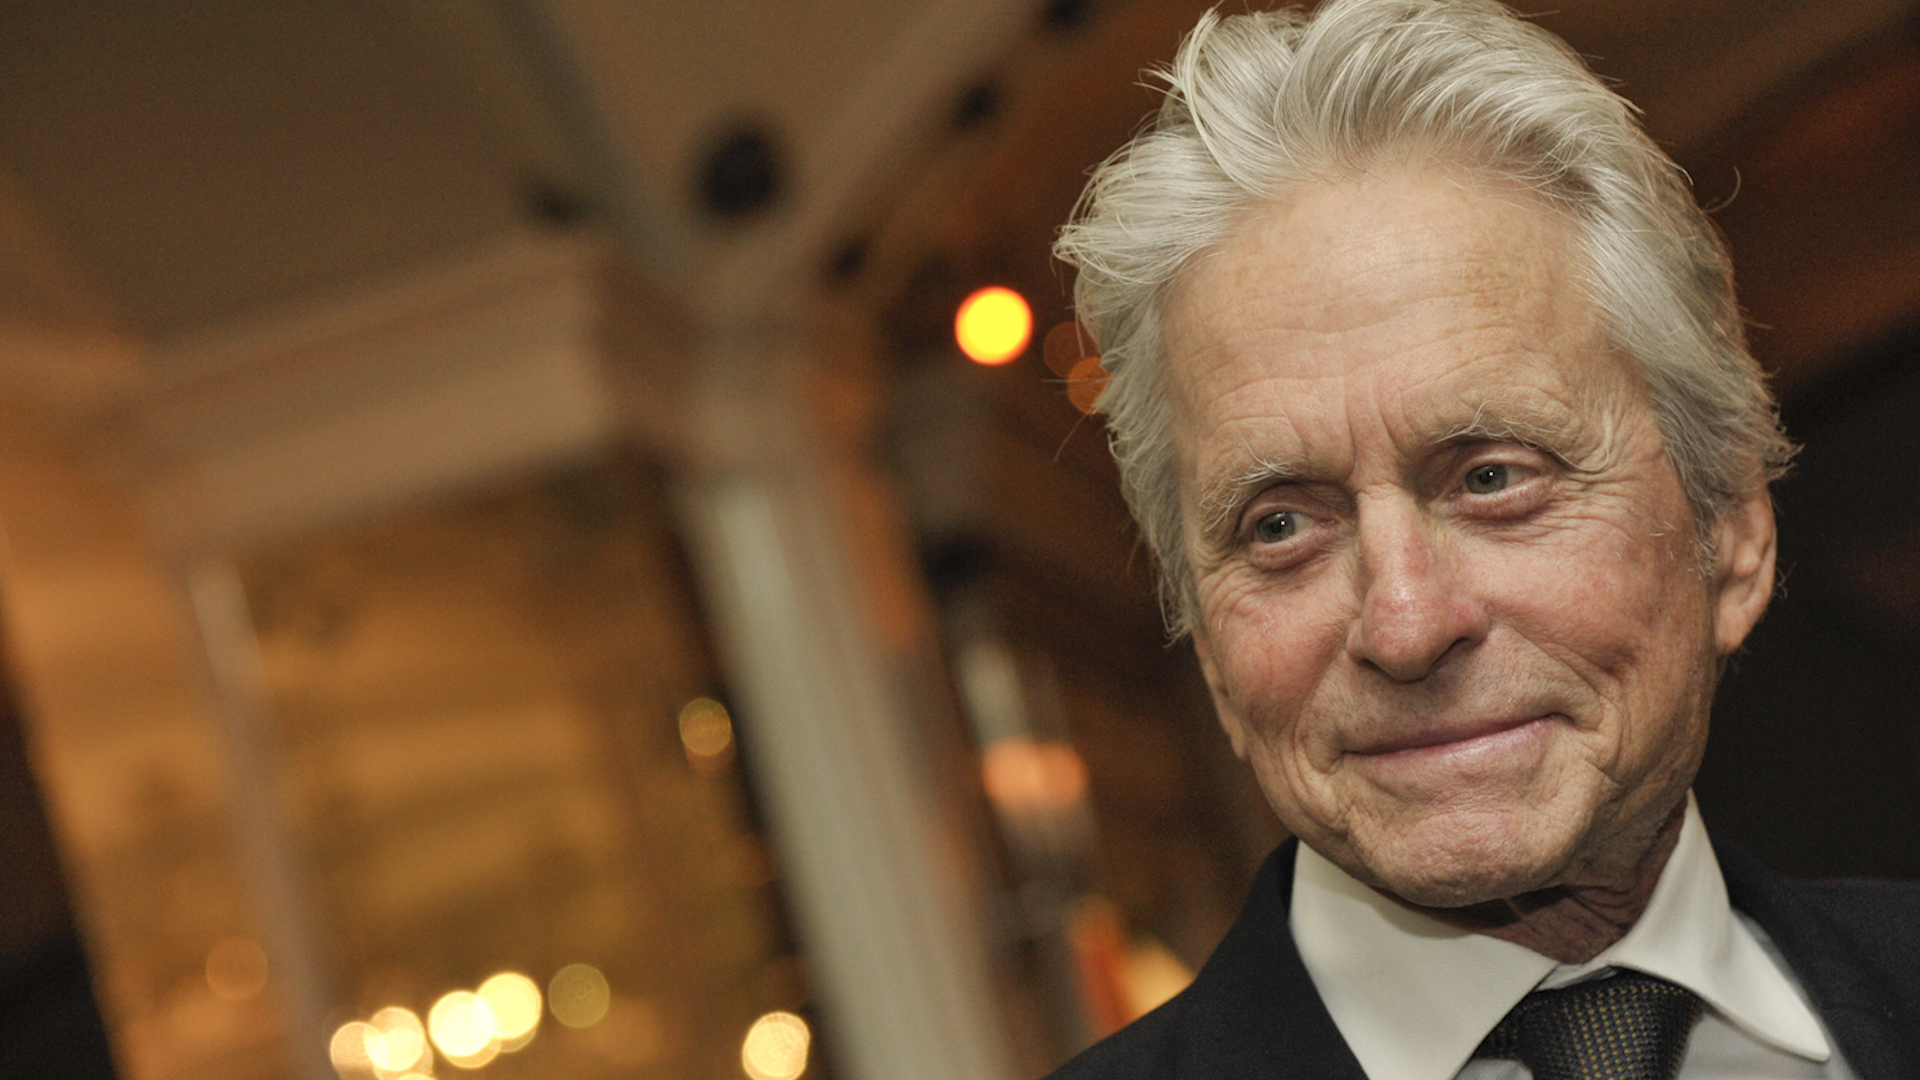 Journalist Susan Braudy Details Sexual Harassment Claims Against Michael Douglas